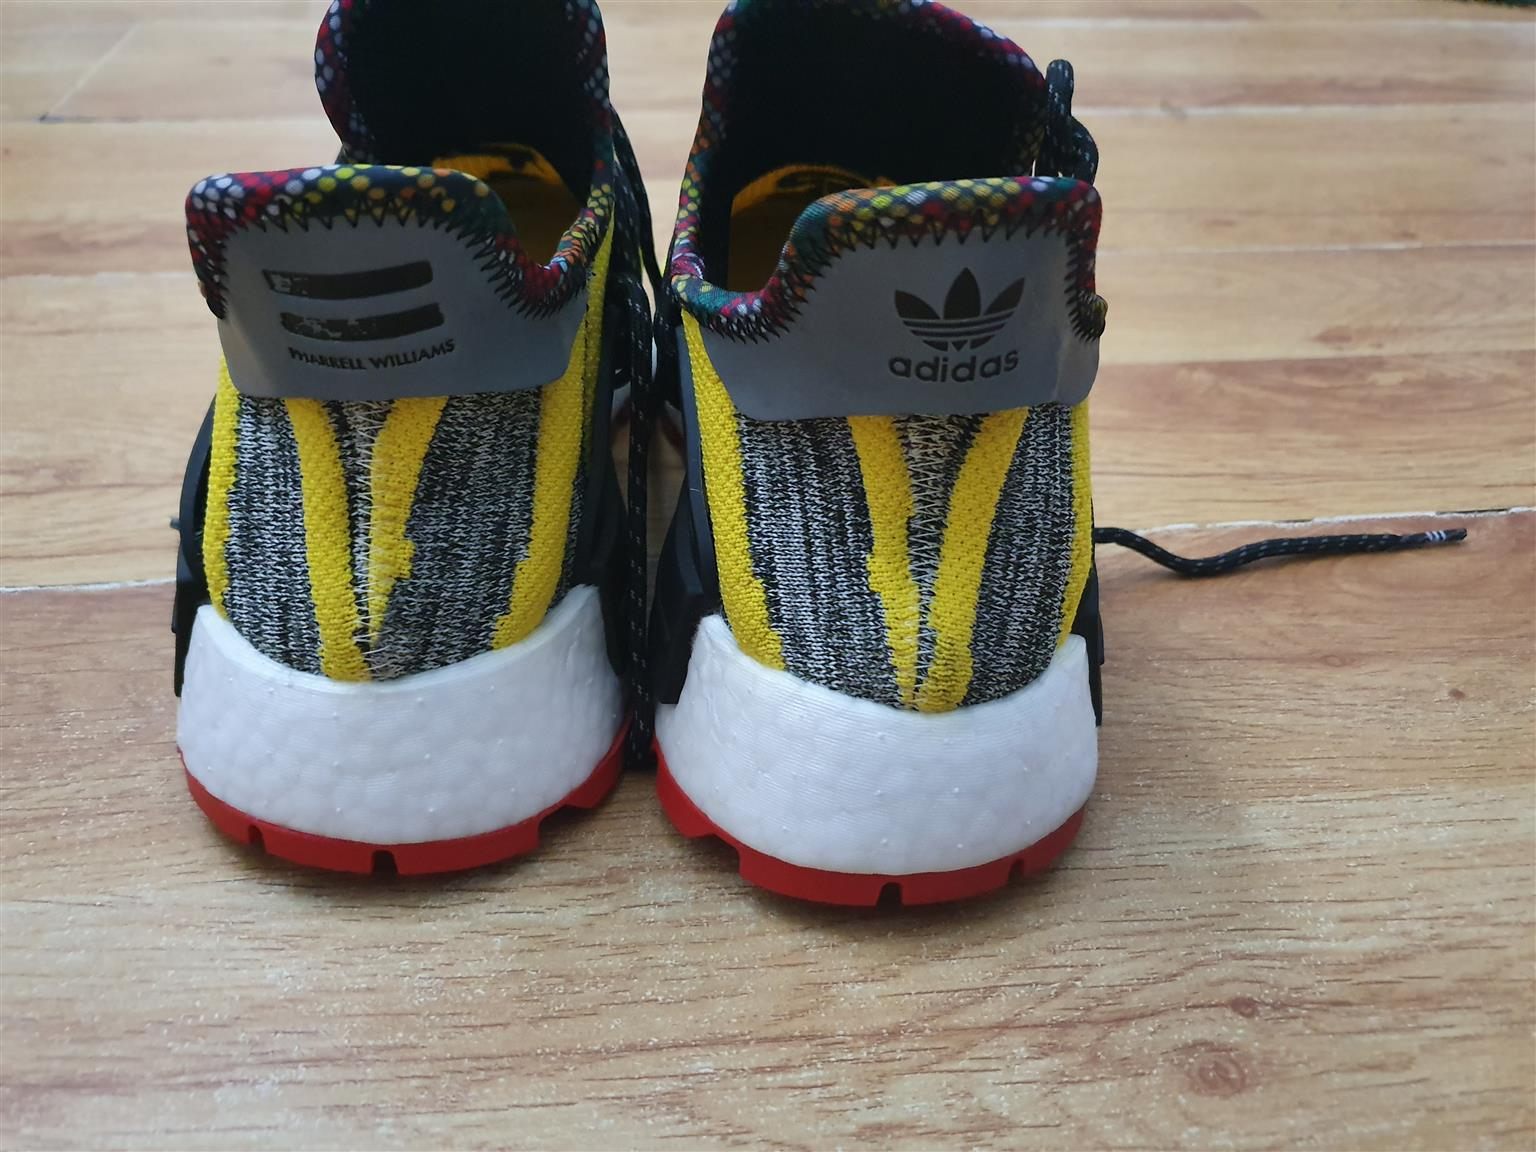 Adidas Pharrell Williams NMD sneakers